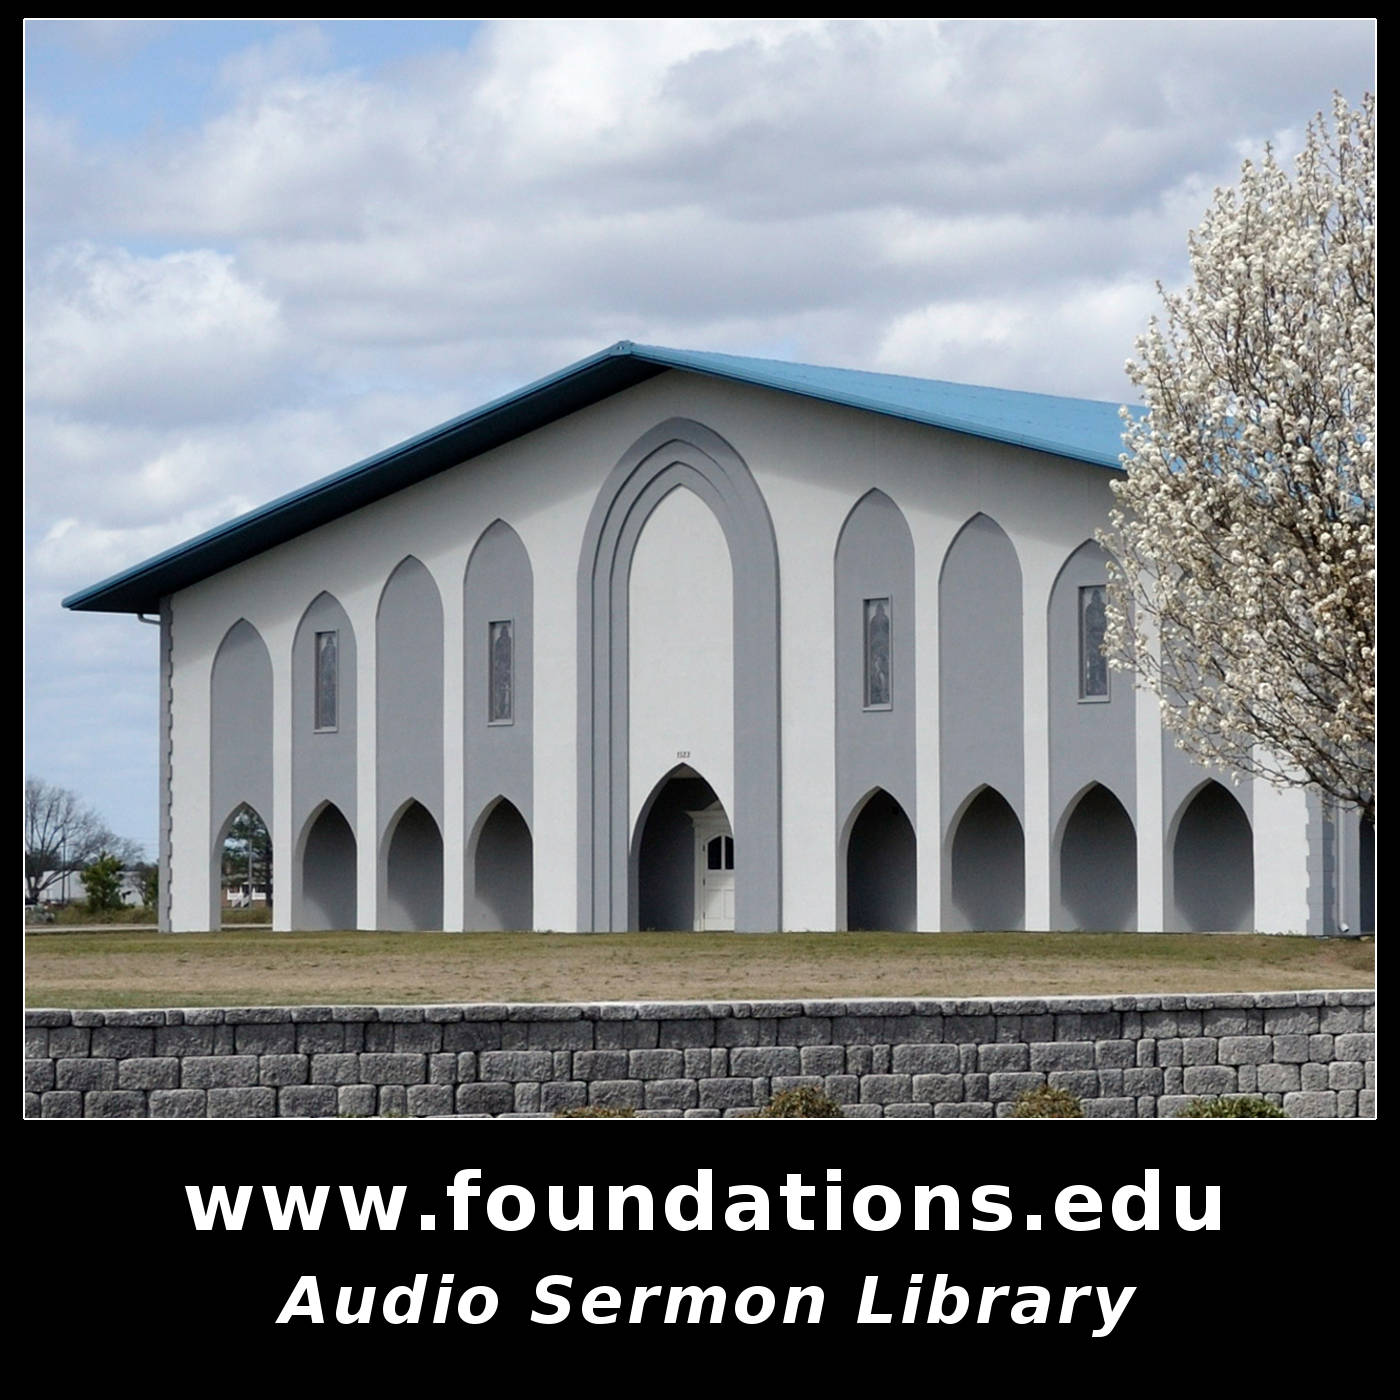 Foundations Audio Sermon Library